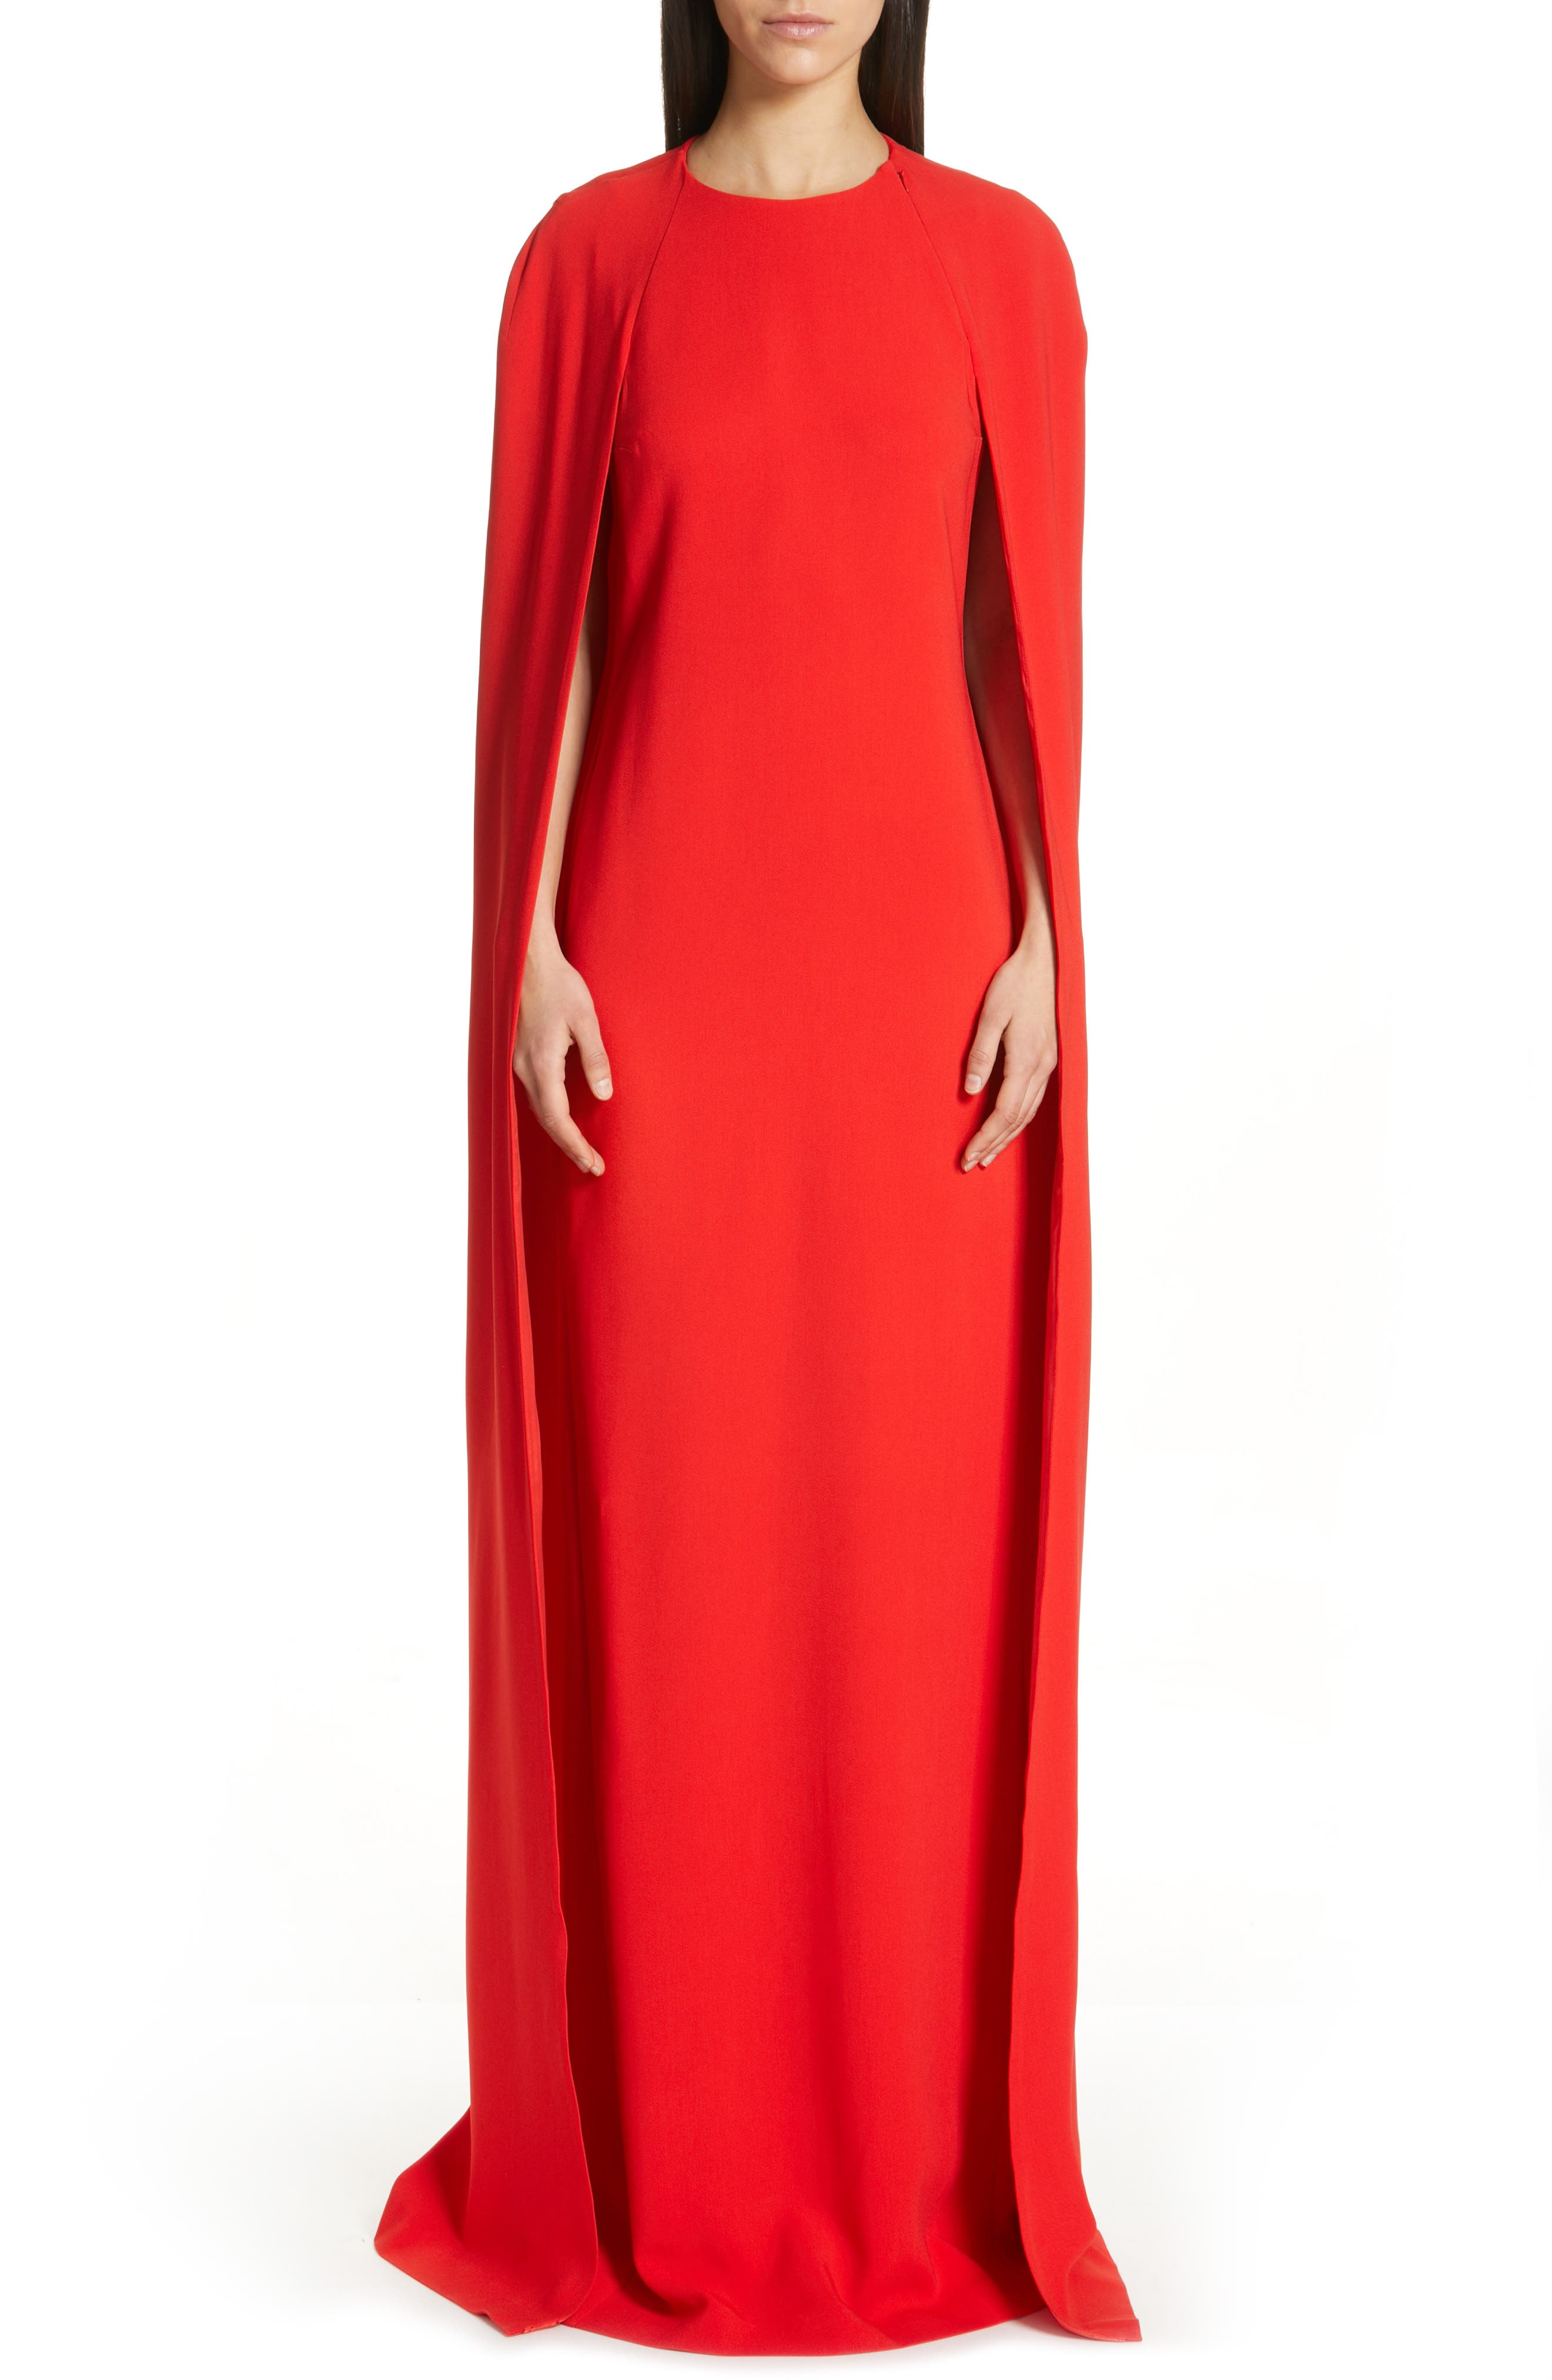 Stella Mccartney Violet Cape Sheath Gown, US / 44 IT - Red